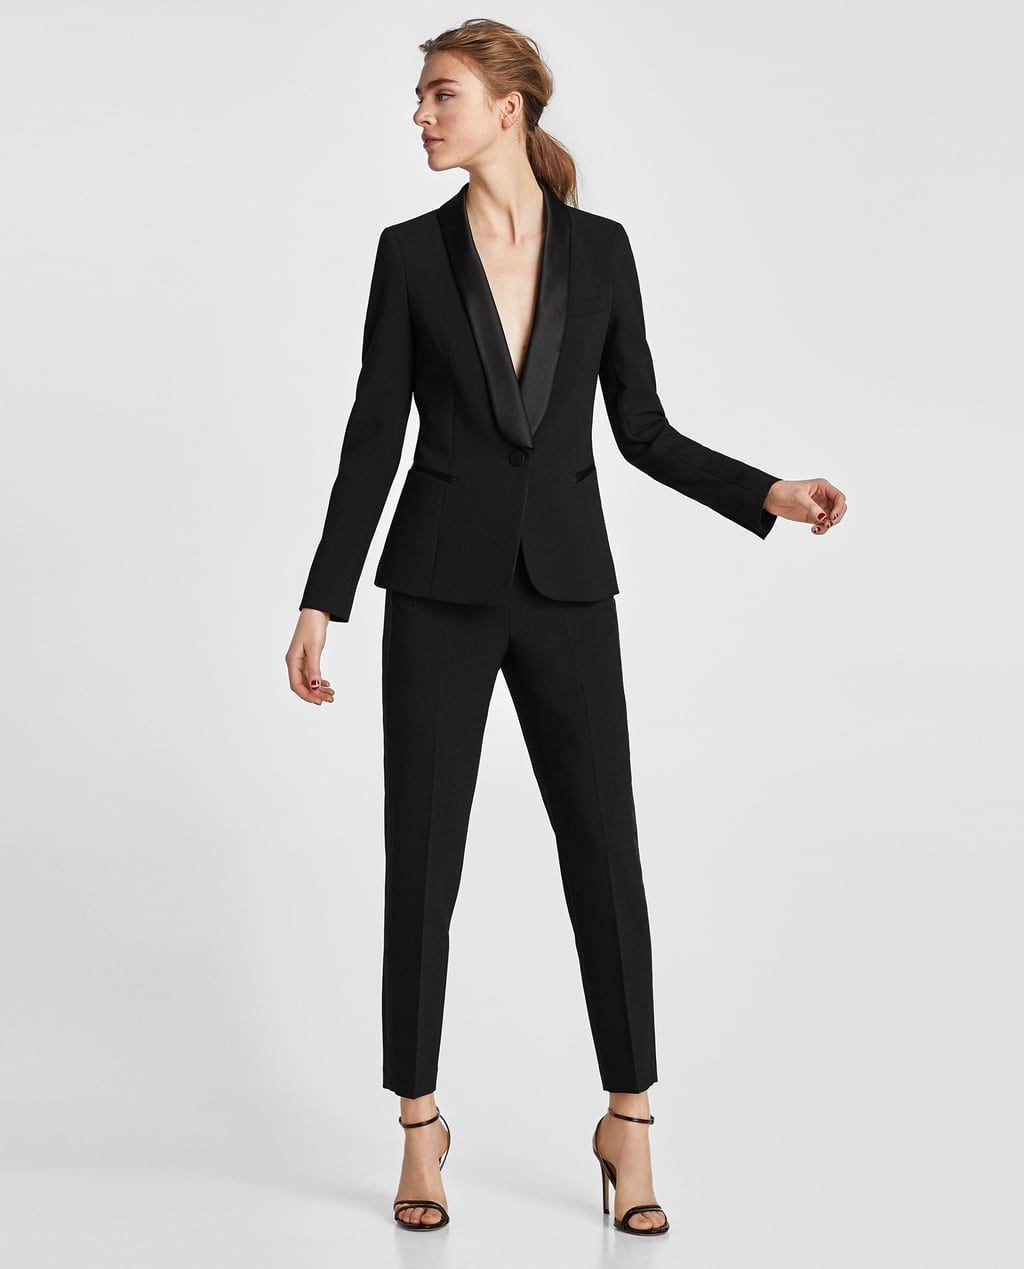 BLAZER SMOKING in 2019   Wear   Fashion, Blazer, Tuxedo e4e1cebf6c56